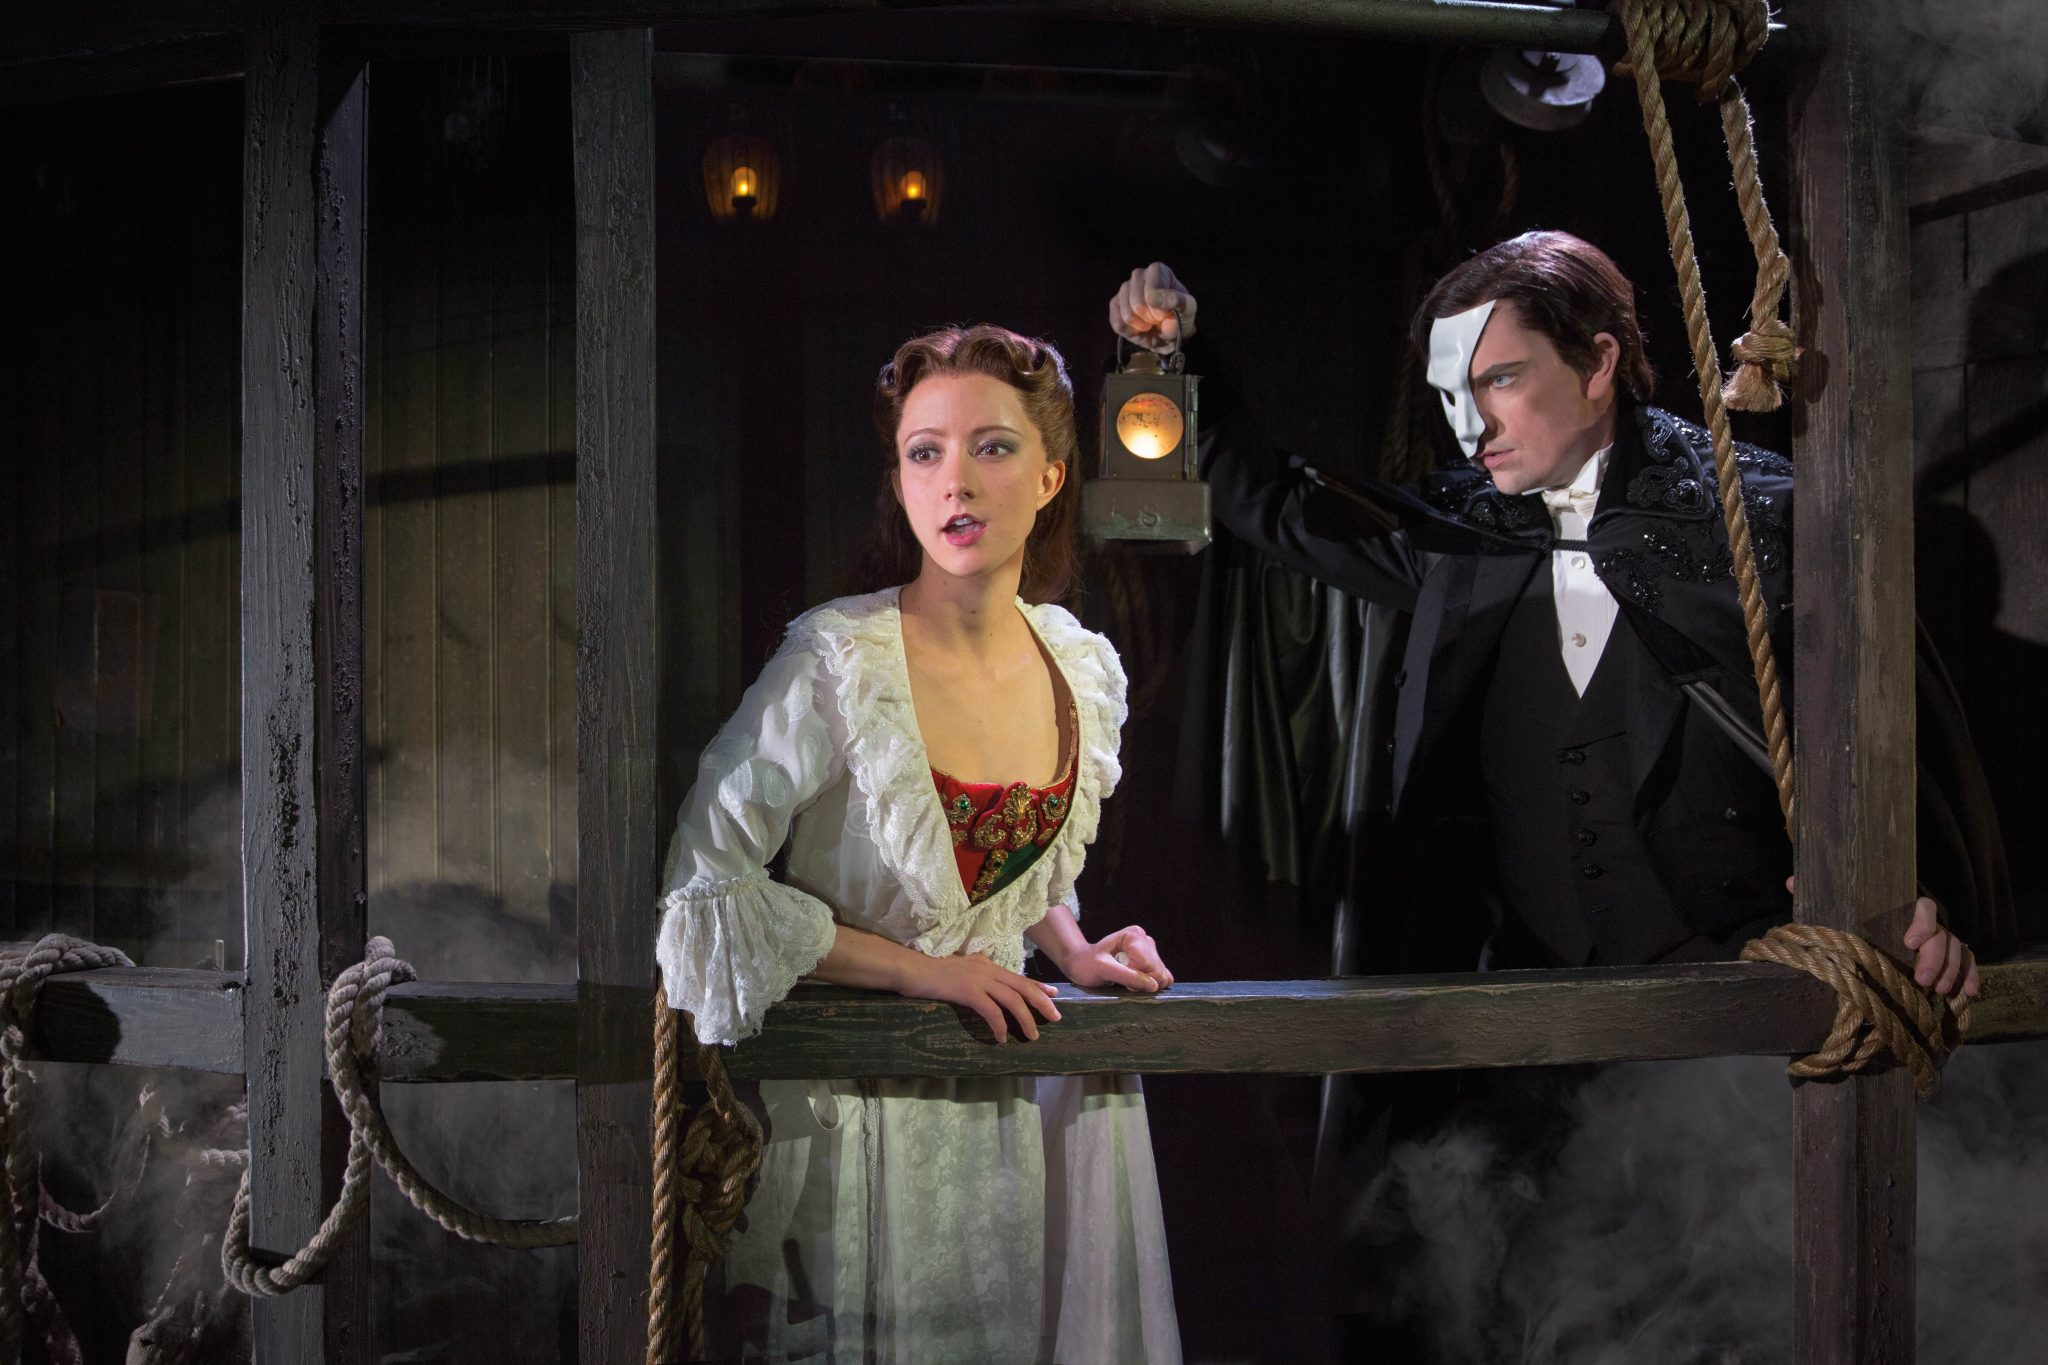 THE PHANTOM OF THE OPERA 1 - Katie Travis and Chris Mann - photo by Matthew Murphy